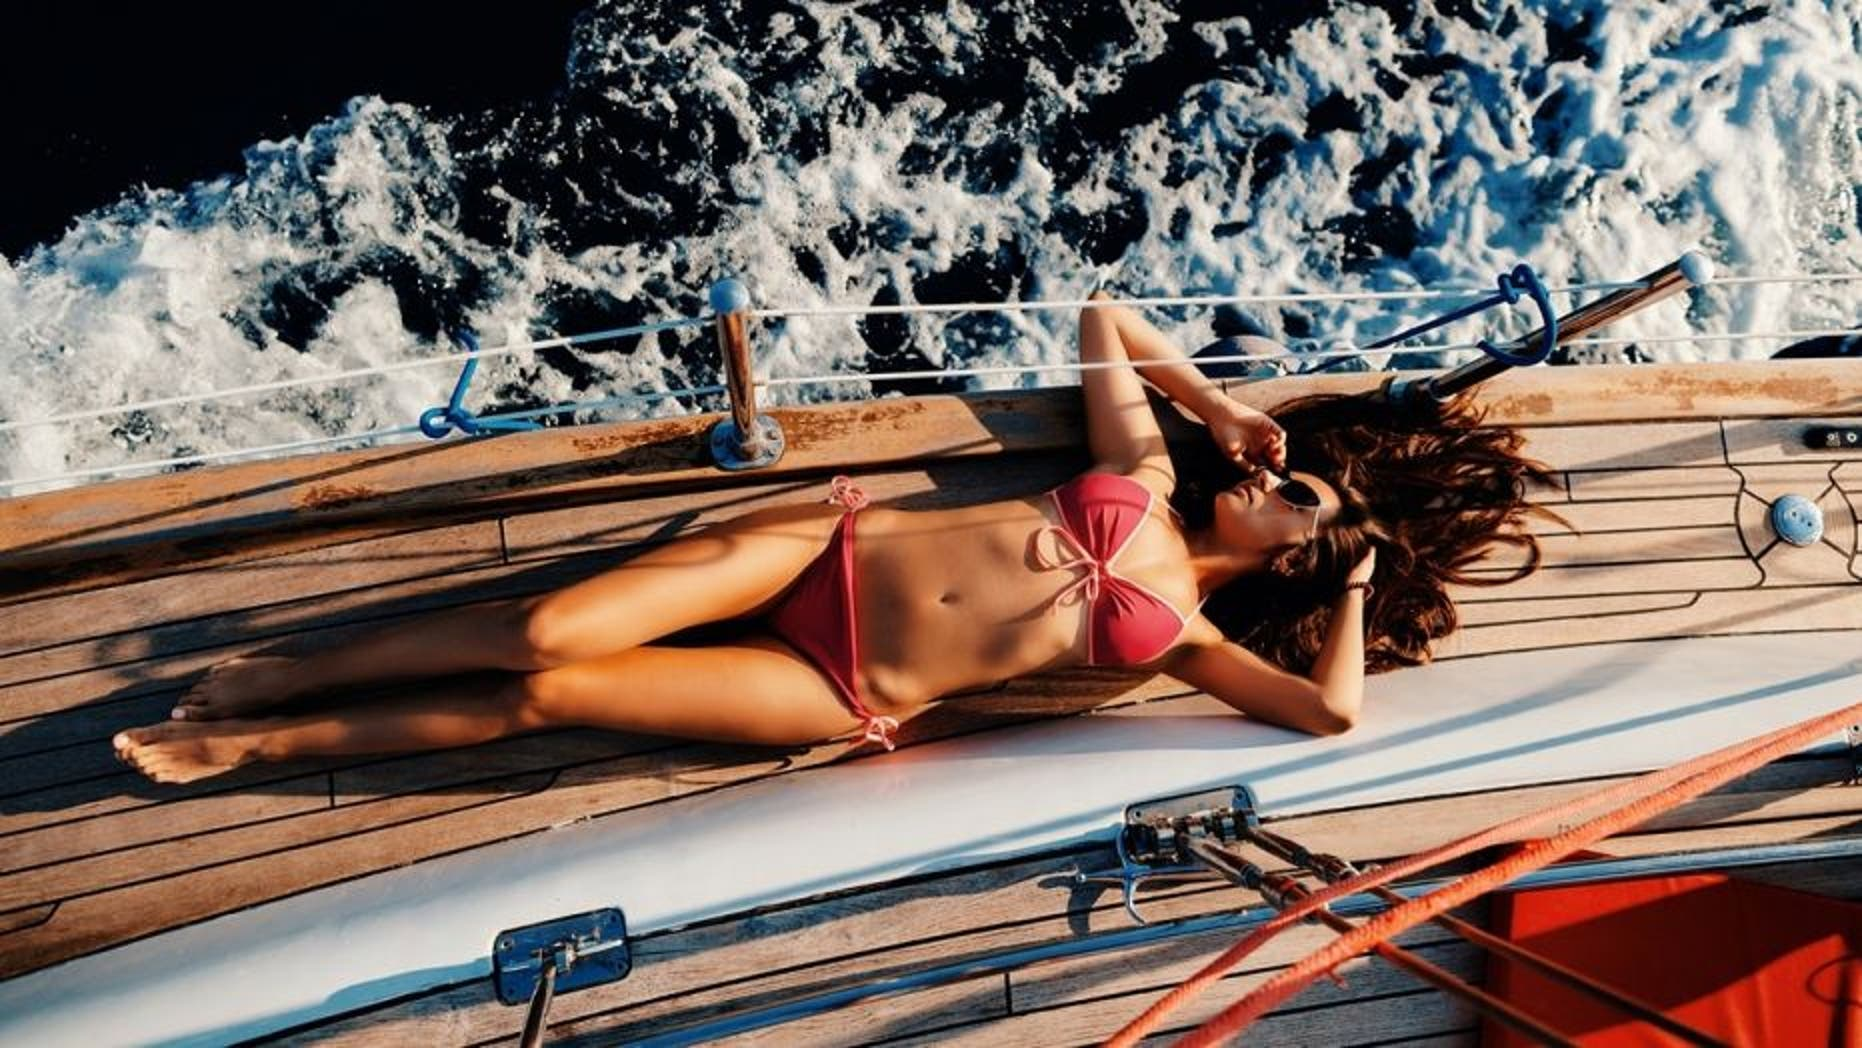 Life on the high seas is not all fun and games, staffers say.